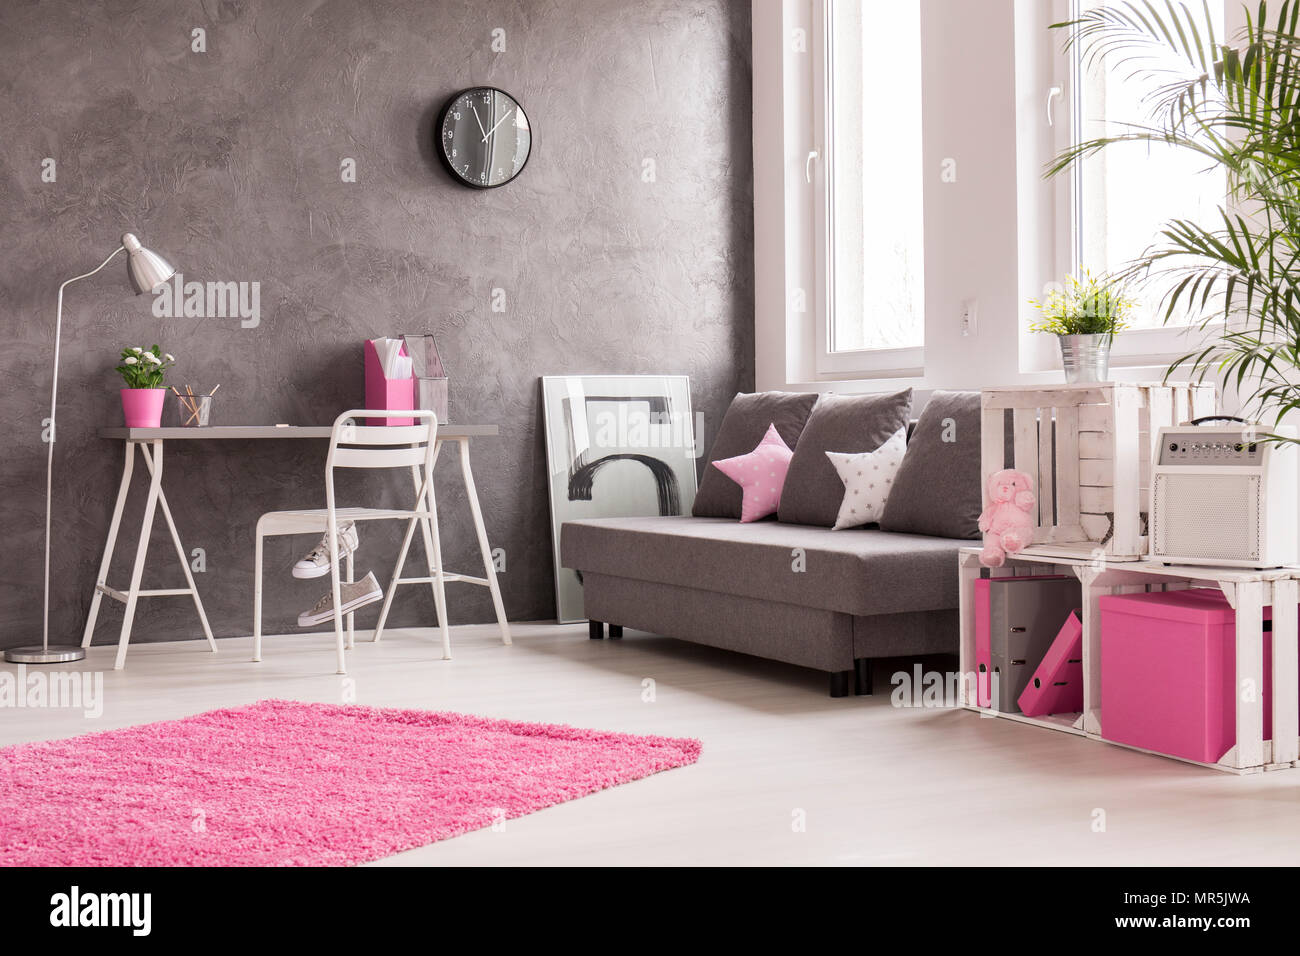 Spacious Interior In Grey, Pink And White With Desk, Office, Lamp, Sofa And  Bookcase